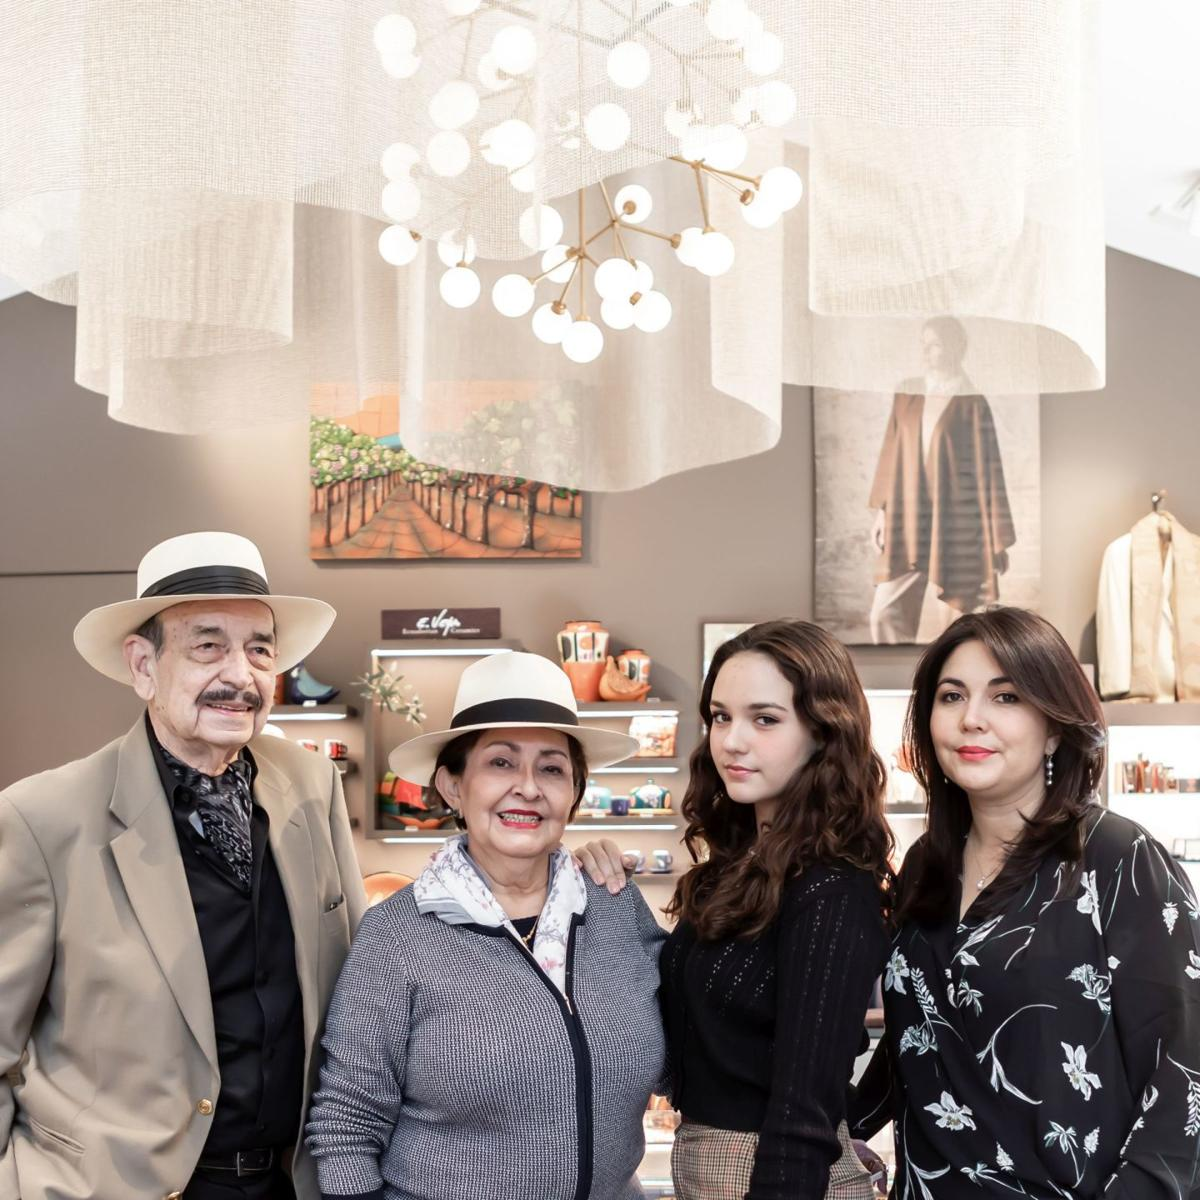 Hats And More For Sale Napa Designer Creates A Home For South American Imports Lifestyles Napavalleyregister Com